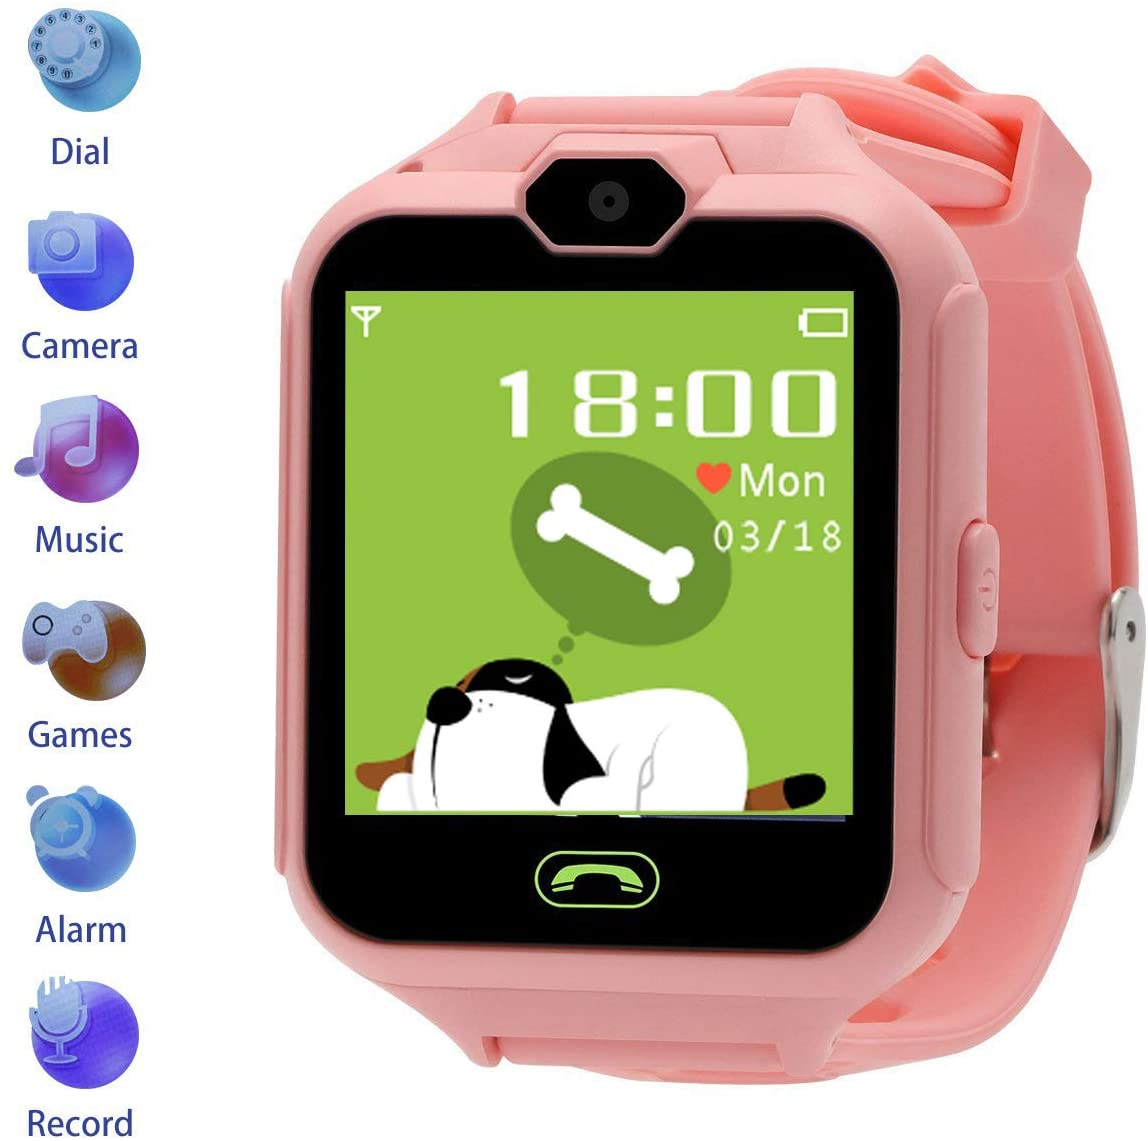 Winnes Kids Smart Watch, Music & Games Smart Watch Phone - 1. 54 inch IPS HD Colored Touch Screen - 7 Games, 2-Way Call / Call Alarm SOS Smart Watch for Boy and Girl 3-12 Years (Pink)